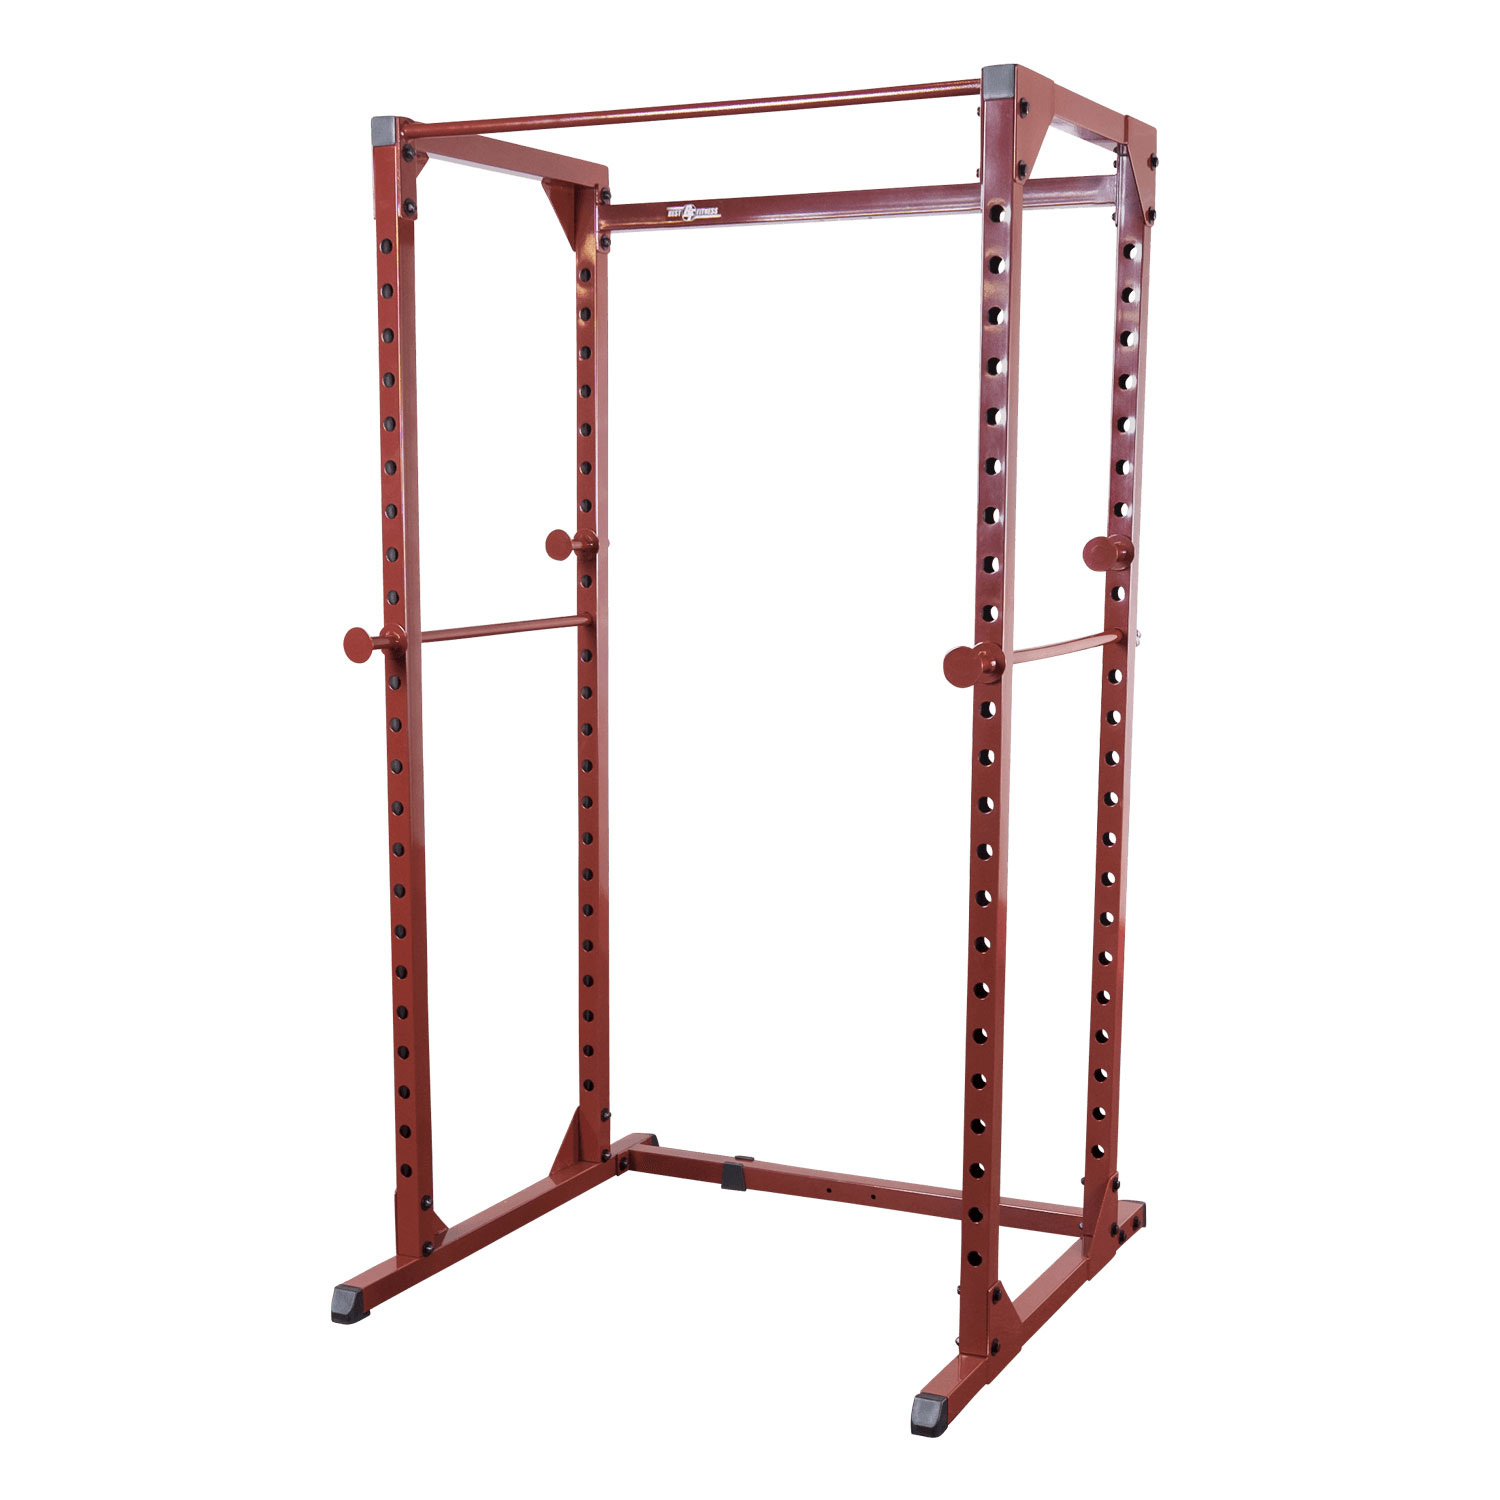 Body Solid Heavy-Duty Home Gym Workout Station Weight Lifting Fitness Power Rack